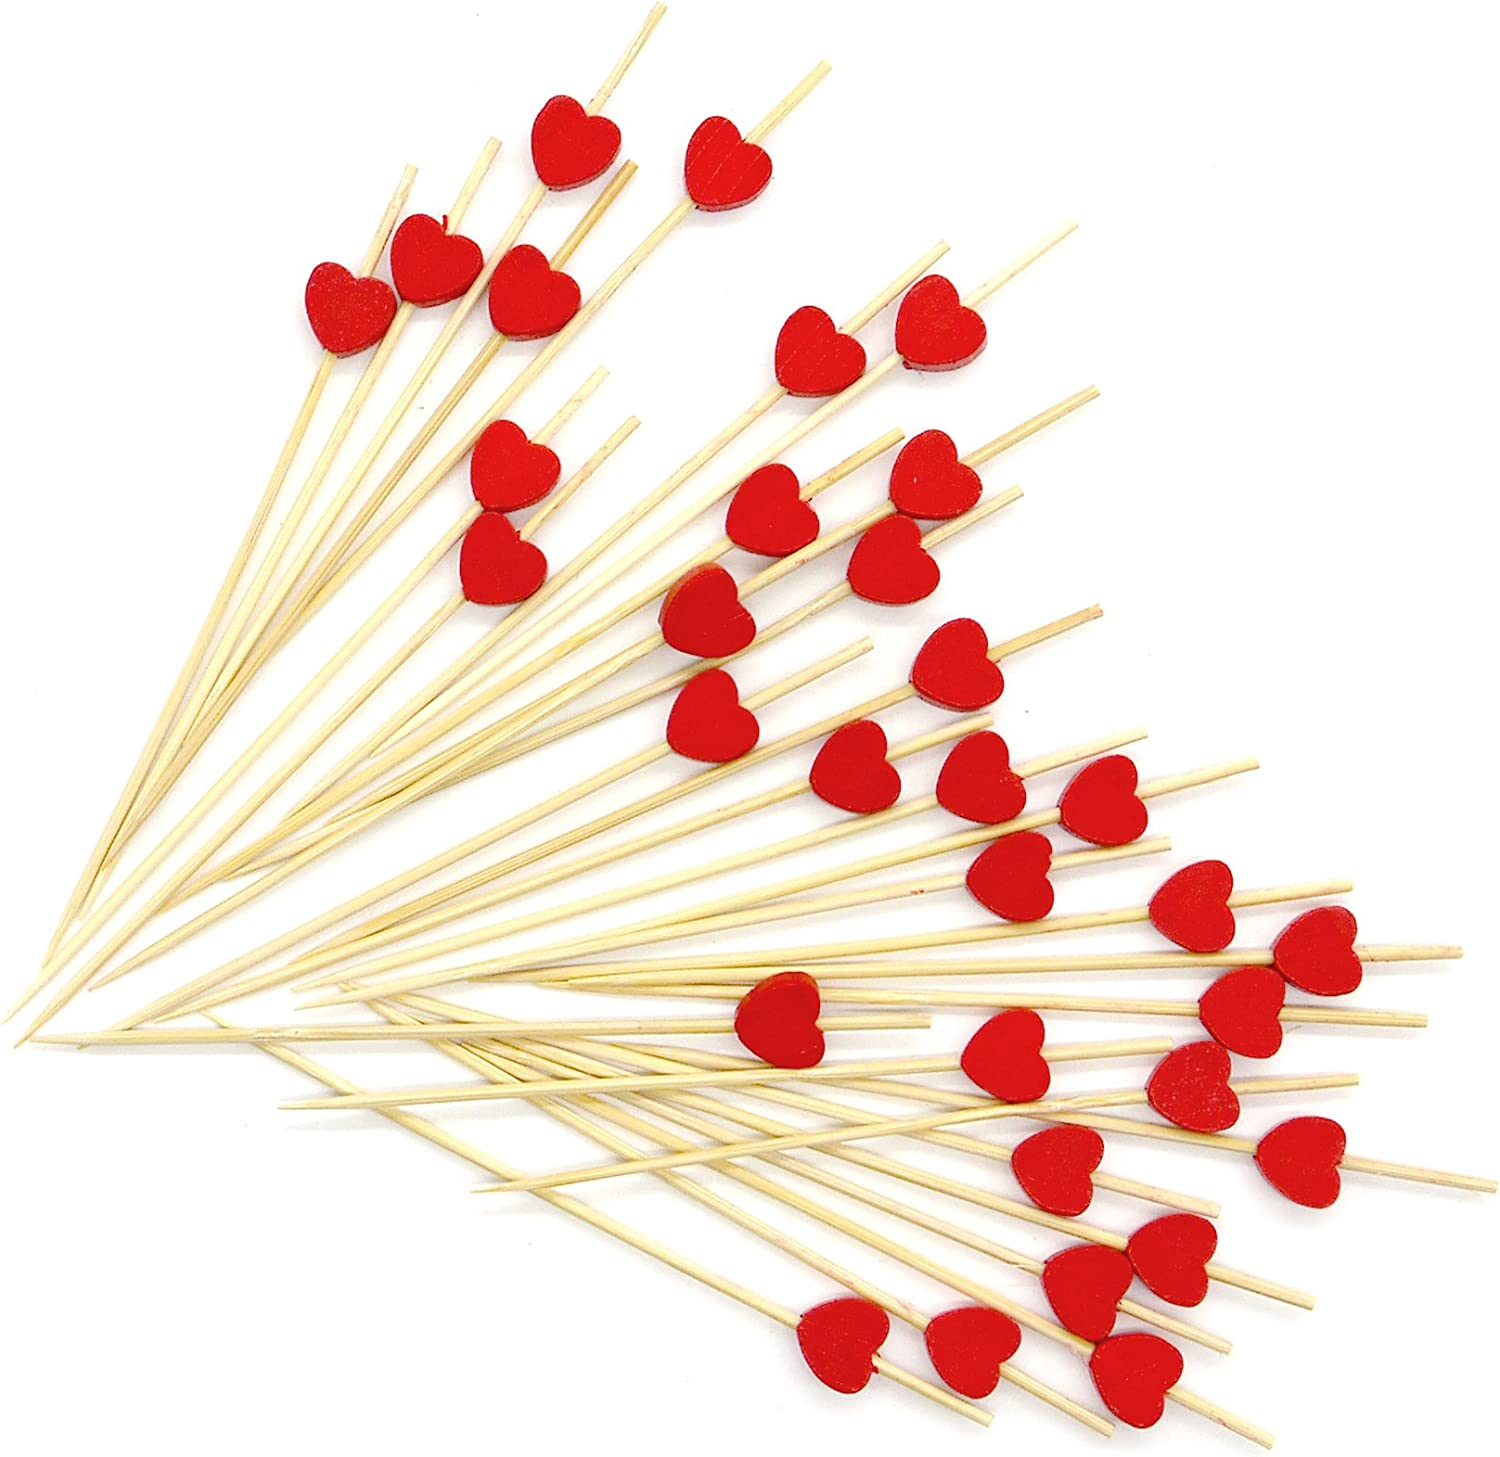 PuTwo Cocktail Toothpicks 100 Counts Cocktail Picks Handmade Natural Bamboo Cocktail Sticks Eco-Friendly Appetizer Skewers for Cocktail Appetizers Fruits Dessert - Red Hearts